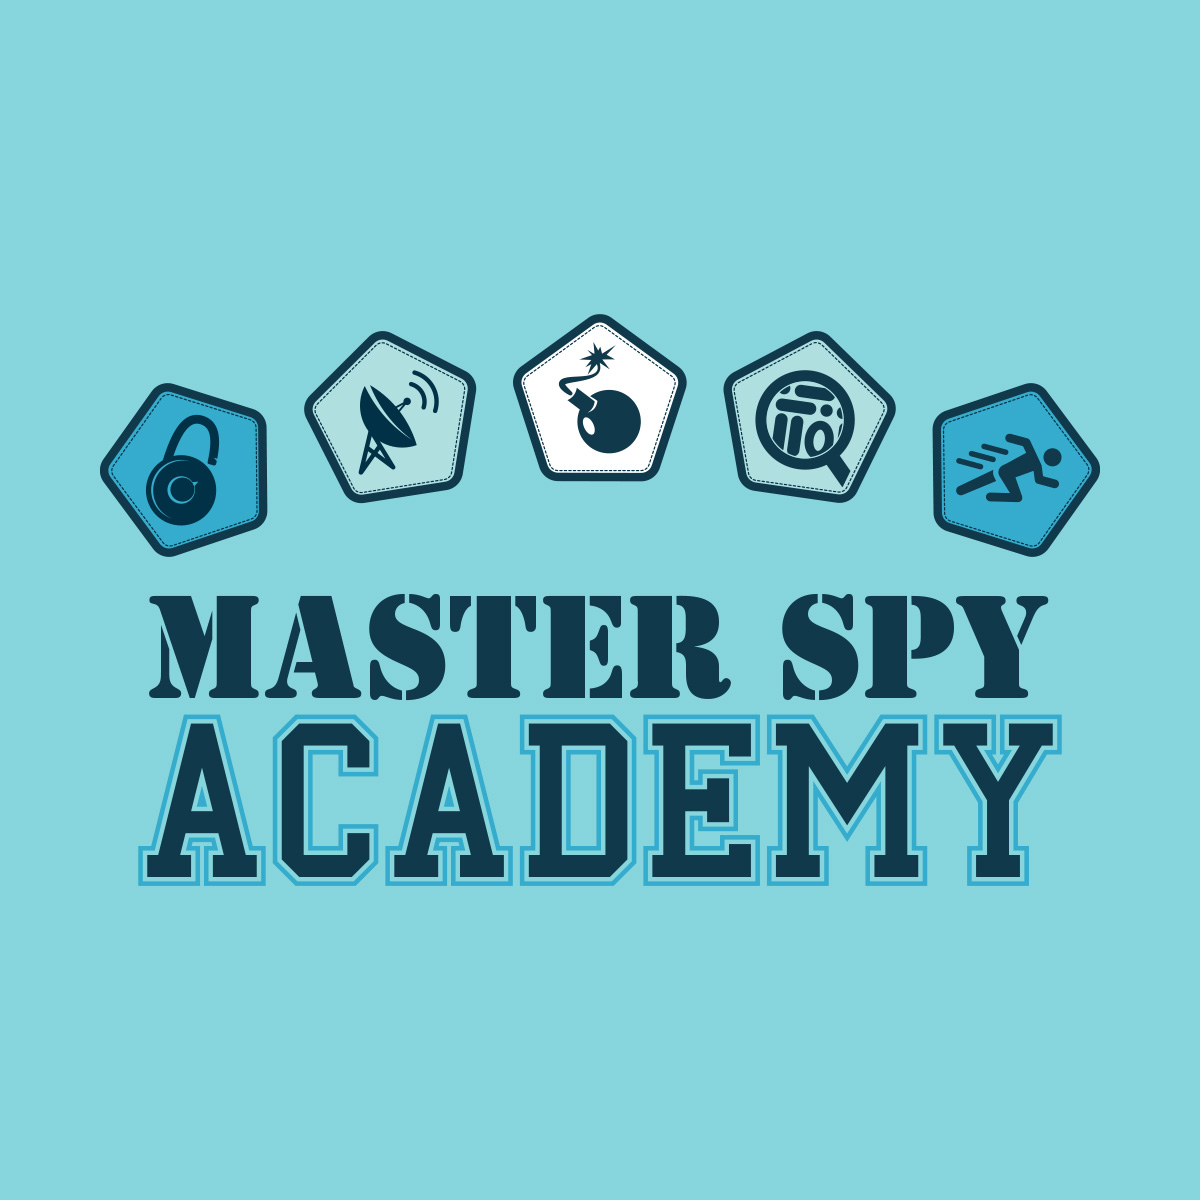 Image Description: Game logo for Master Spy Academy featuring five game-related icons - a combo lock, a satellite dish, an explosive a magnifying glass and a running person.